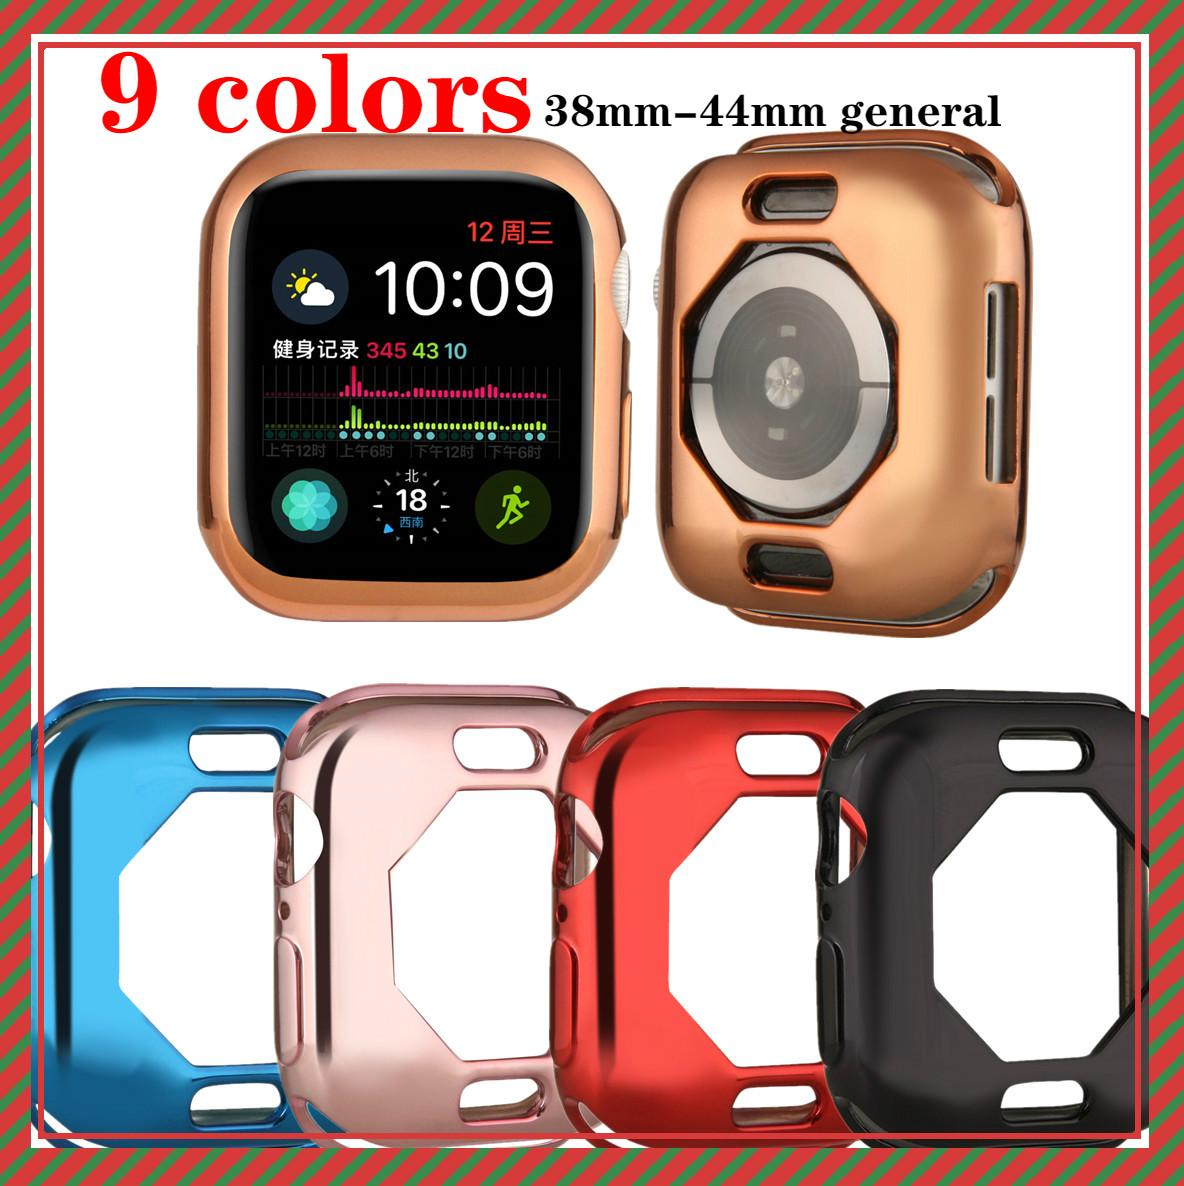 Watch cover Case for Apple watch cover 4 5 40mm 44mm Protective electroplating Soft TPU cases For iWatch Series 3 2 42mm 38mm【Exquisite strap】